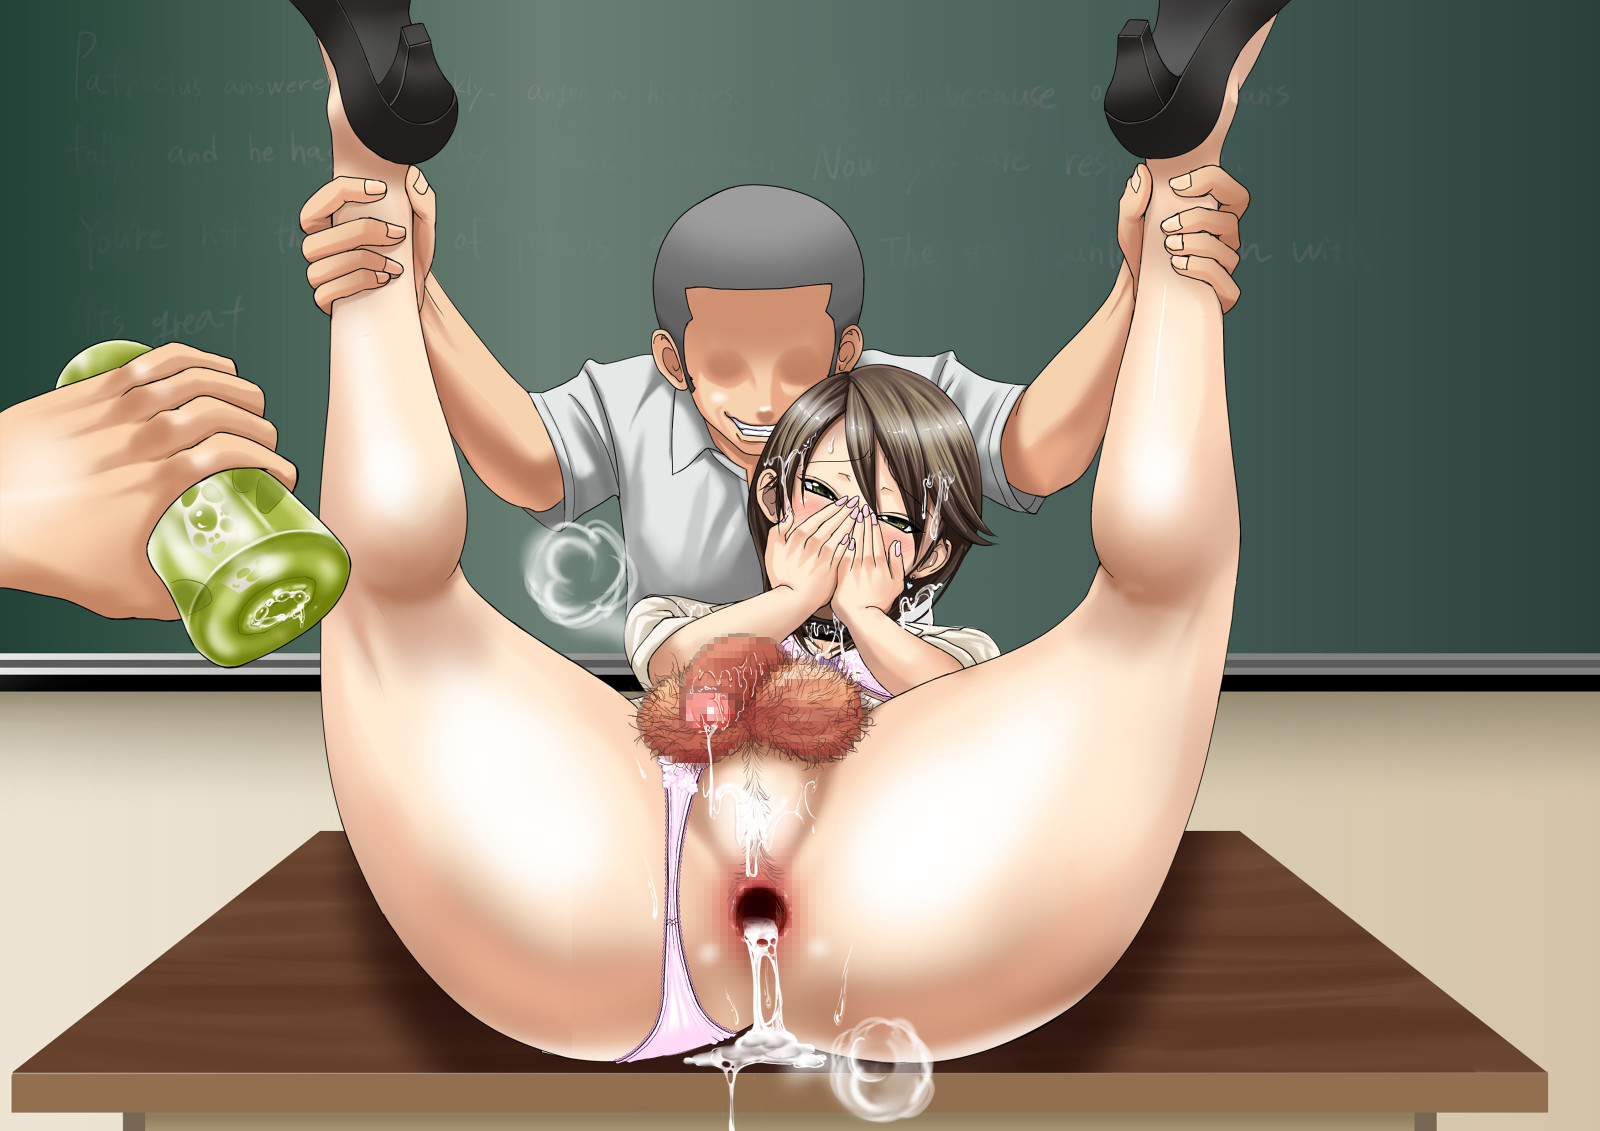 Hentai teacher forced